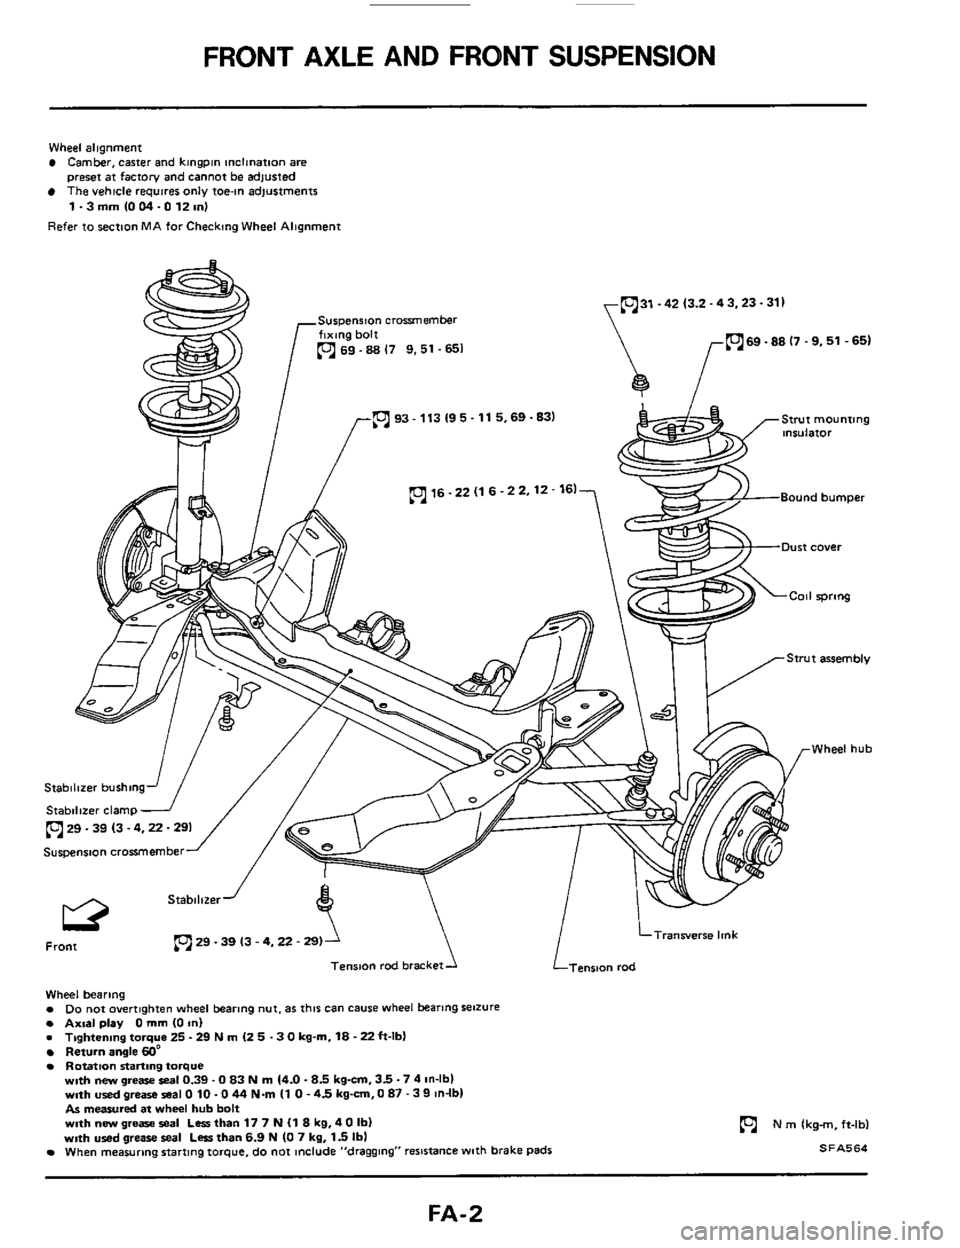 NISSAN 300ZX 1984 Z31 Front Suspension Workshop Manual, Page 2